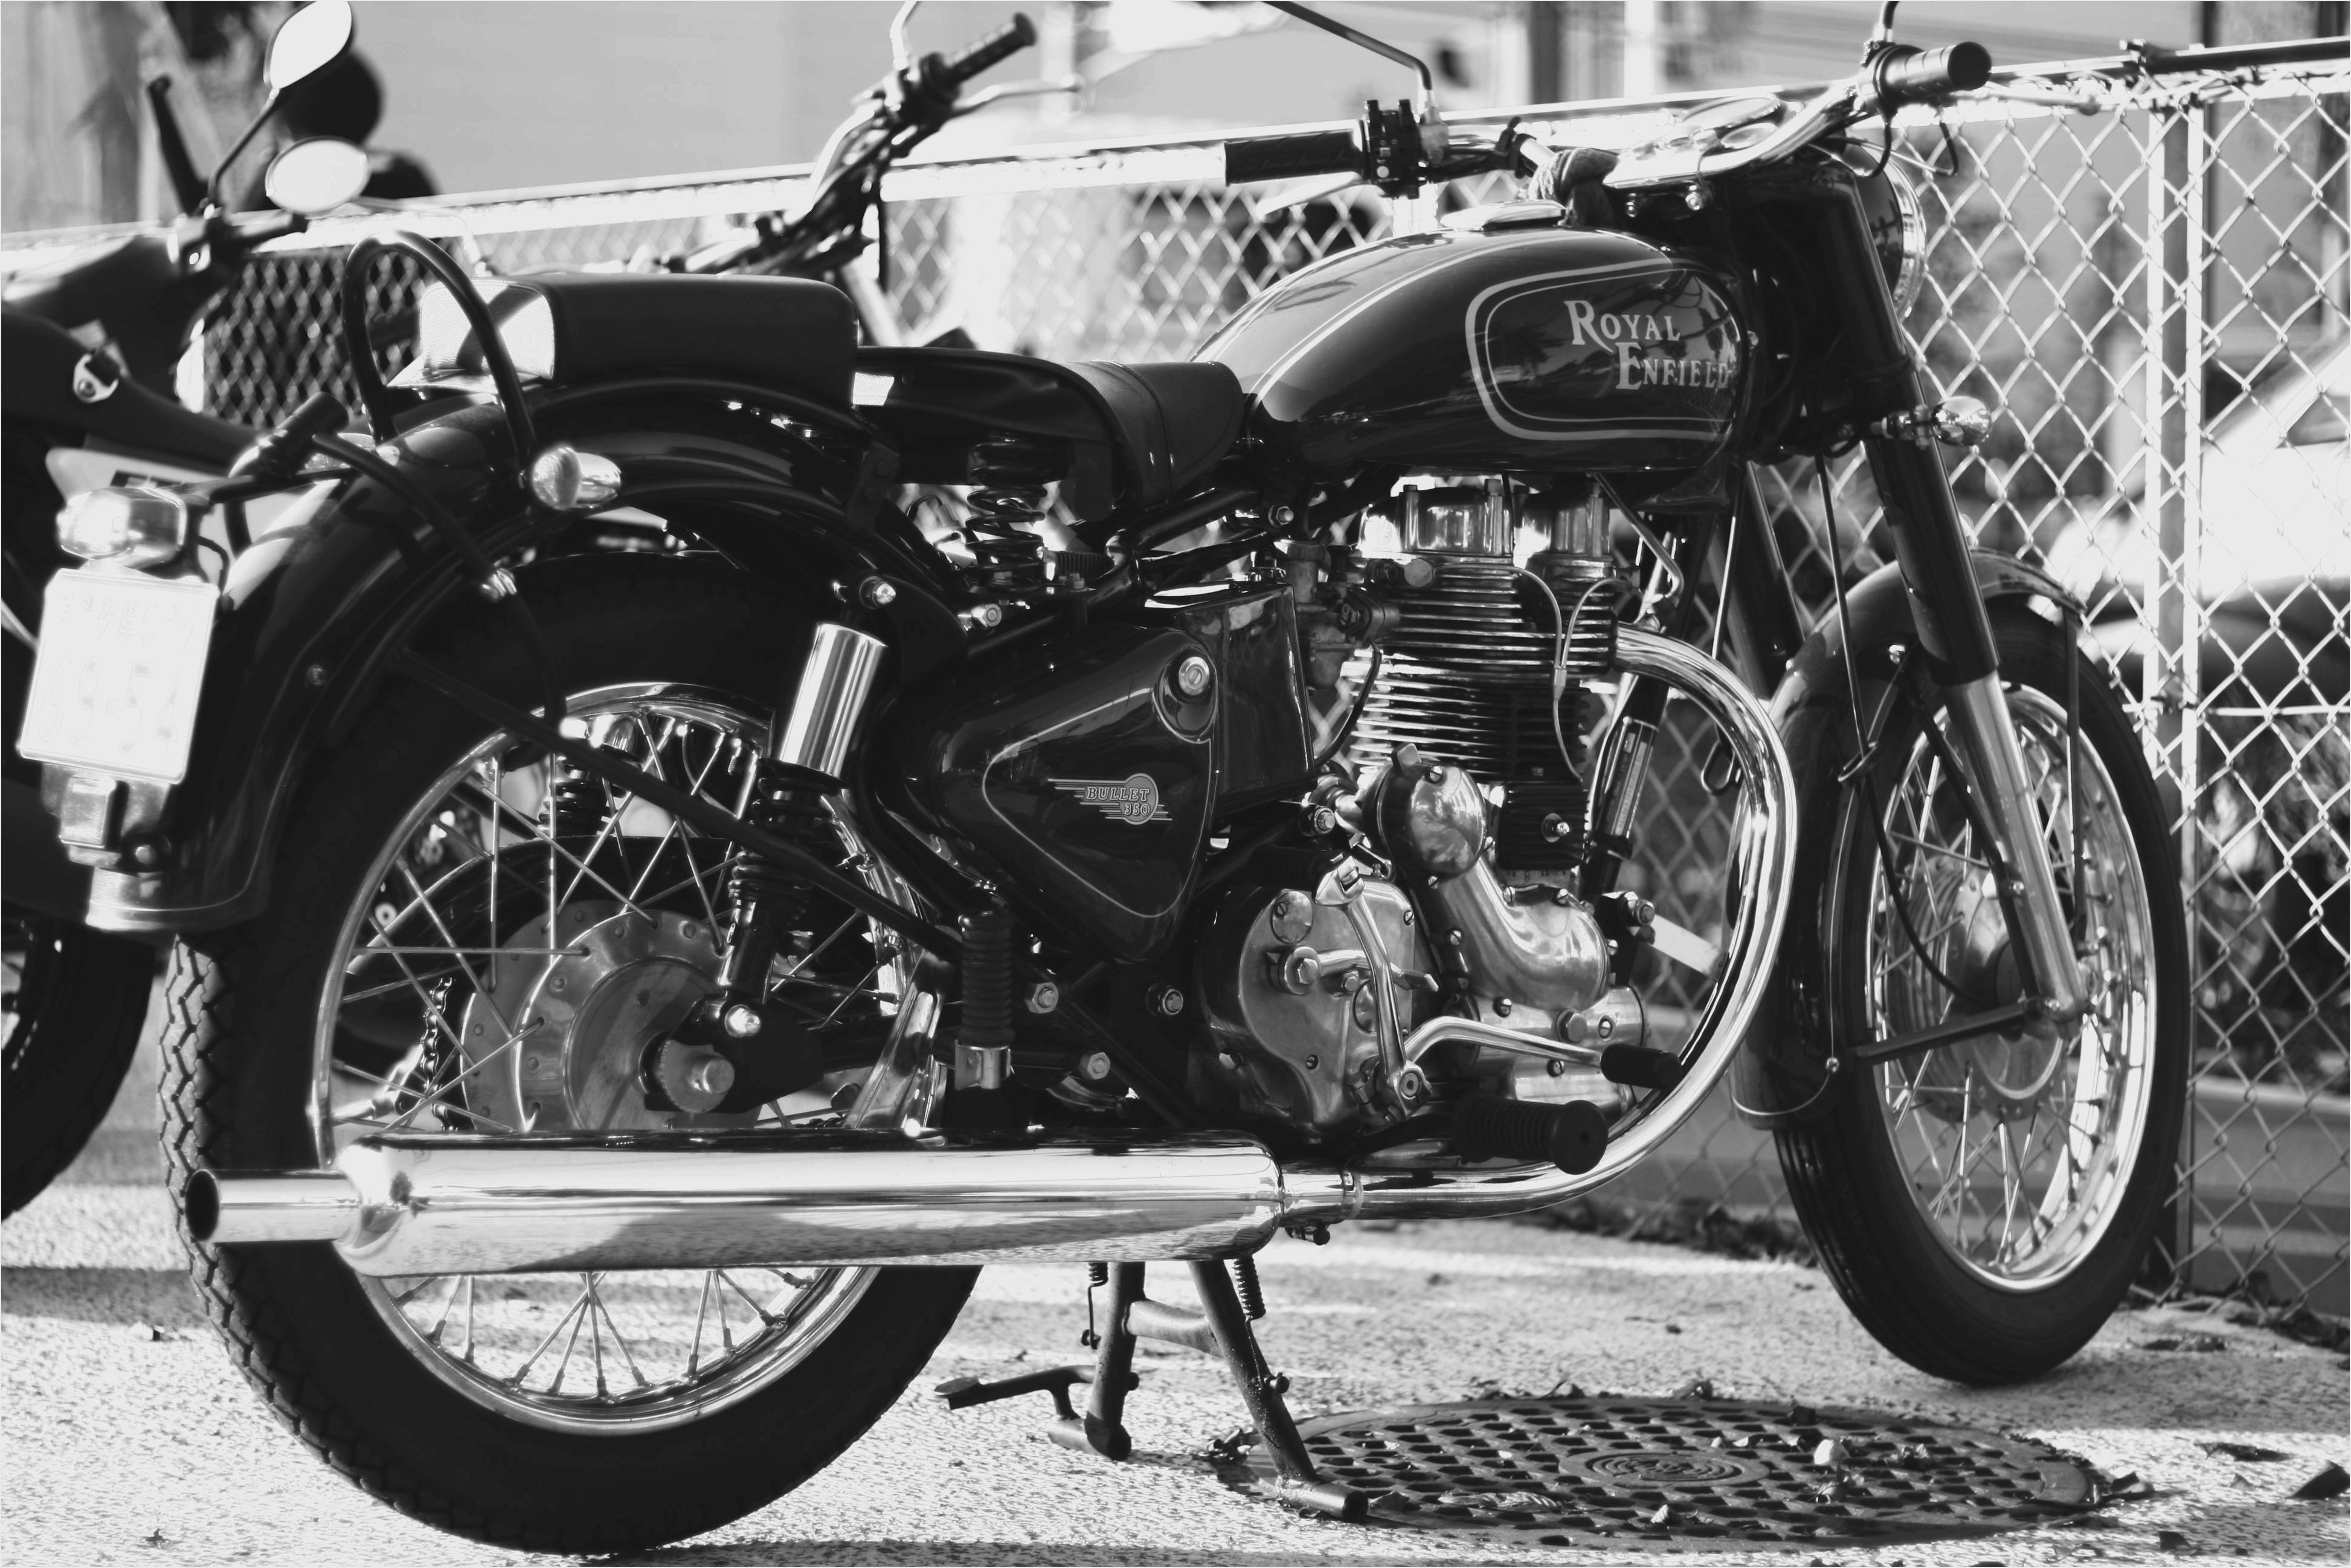 Royal Enfield Bullet 350 Army images #122482